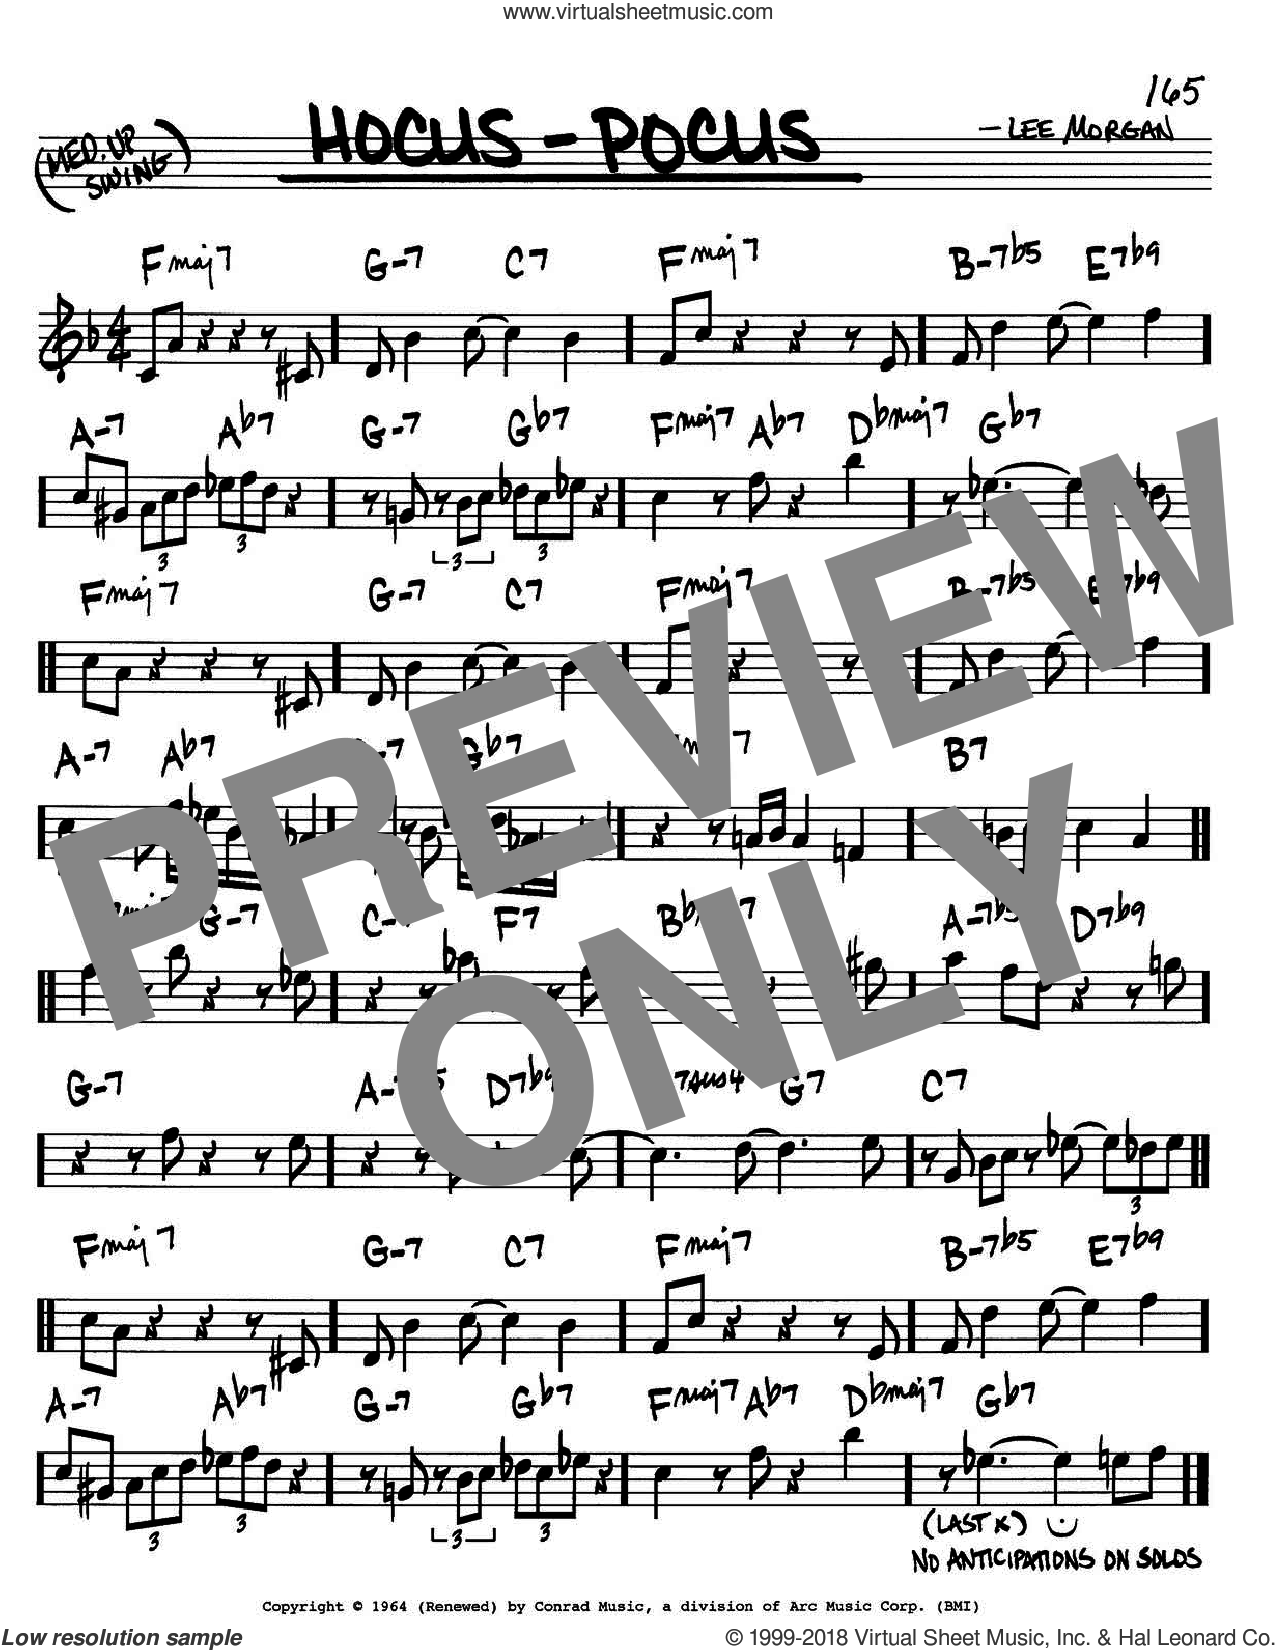 Hocus-Pocus sheet music for voice and other instruments (in C) by Lee Morgan, intermediate skill level